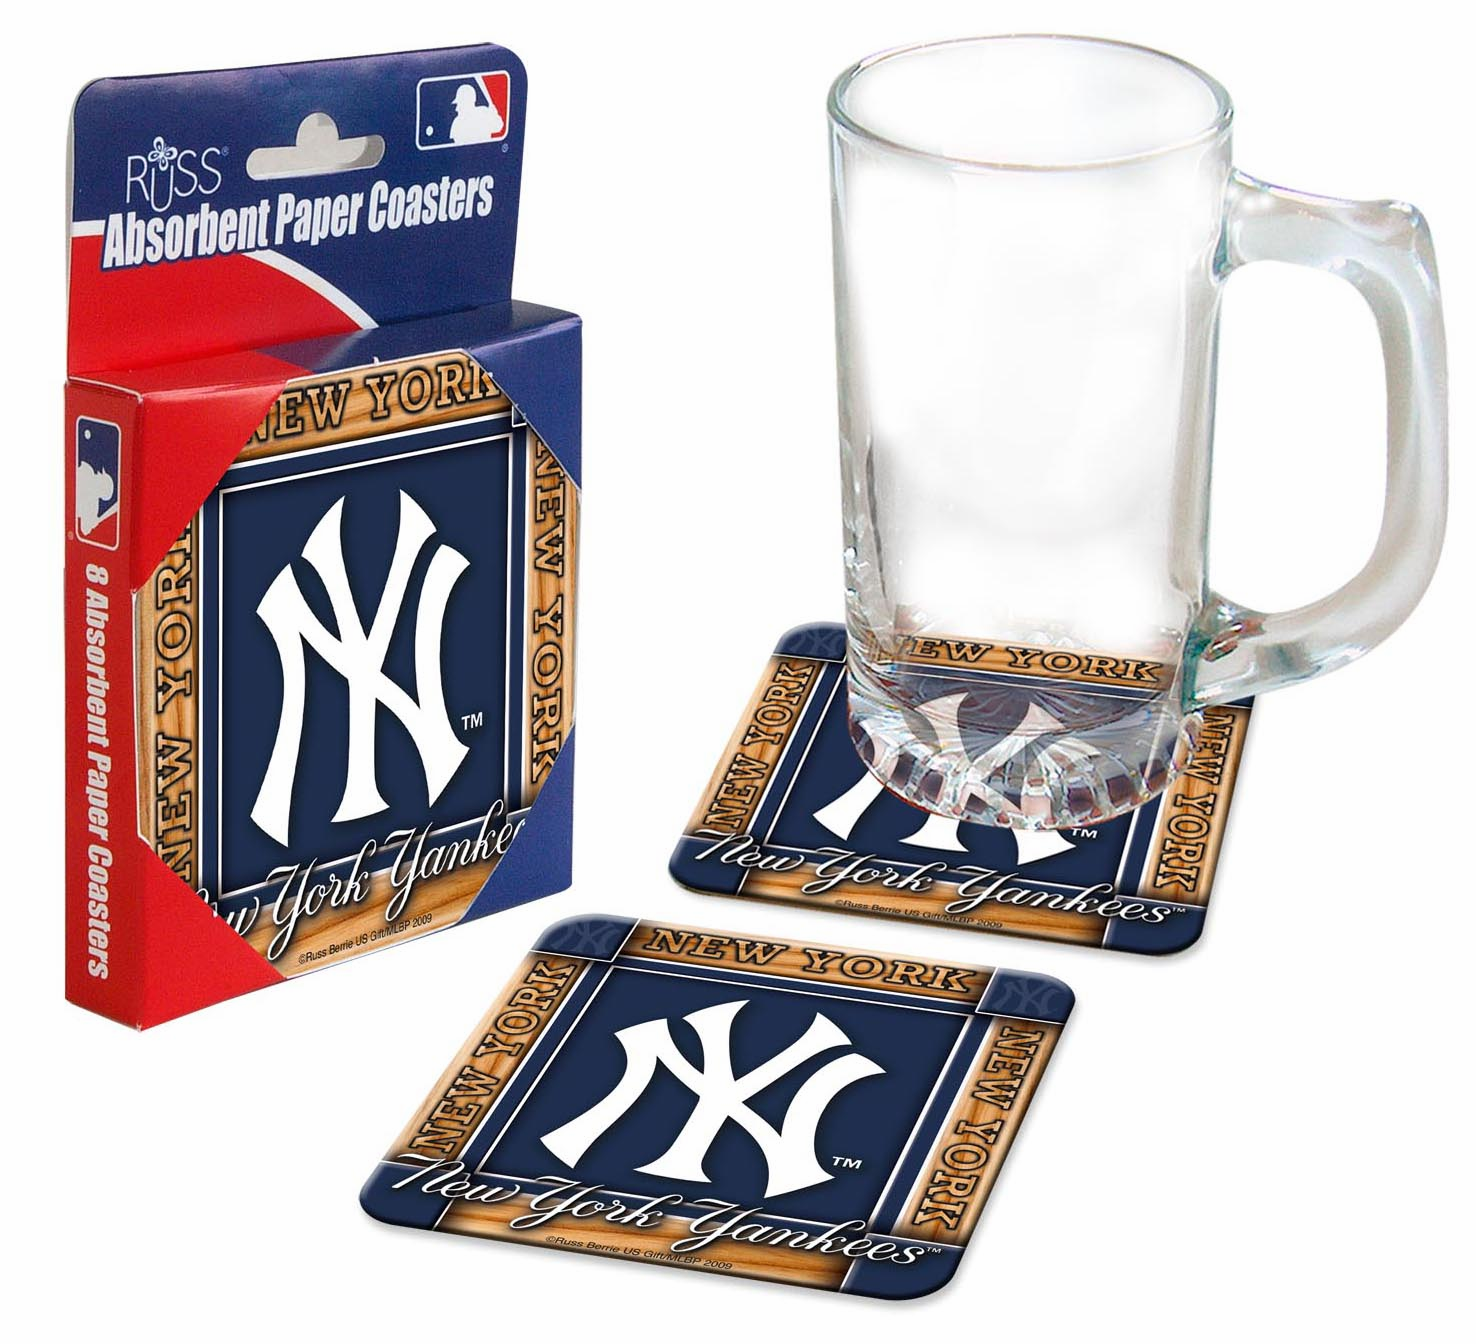 New York Yankees Absorbent Paper Coaster Set